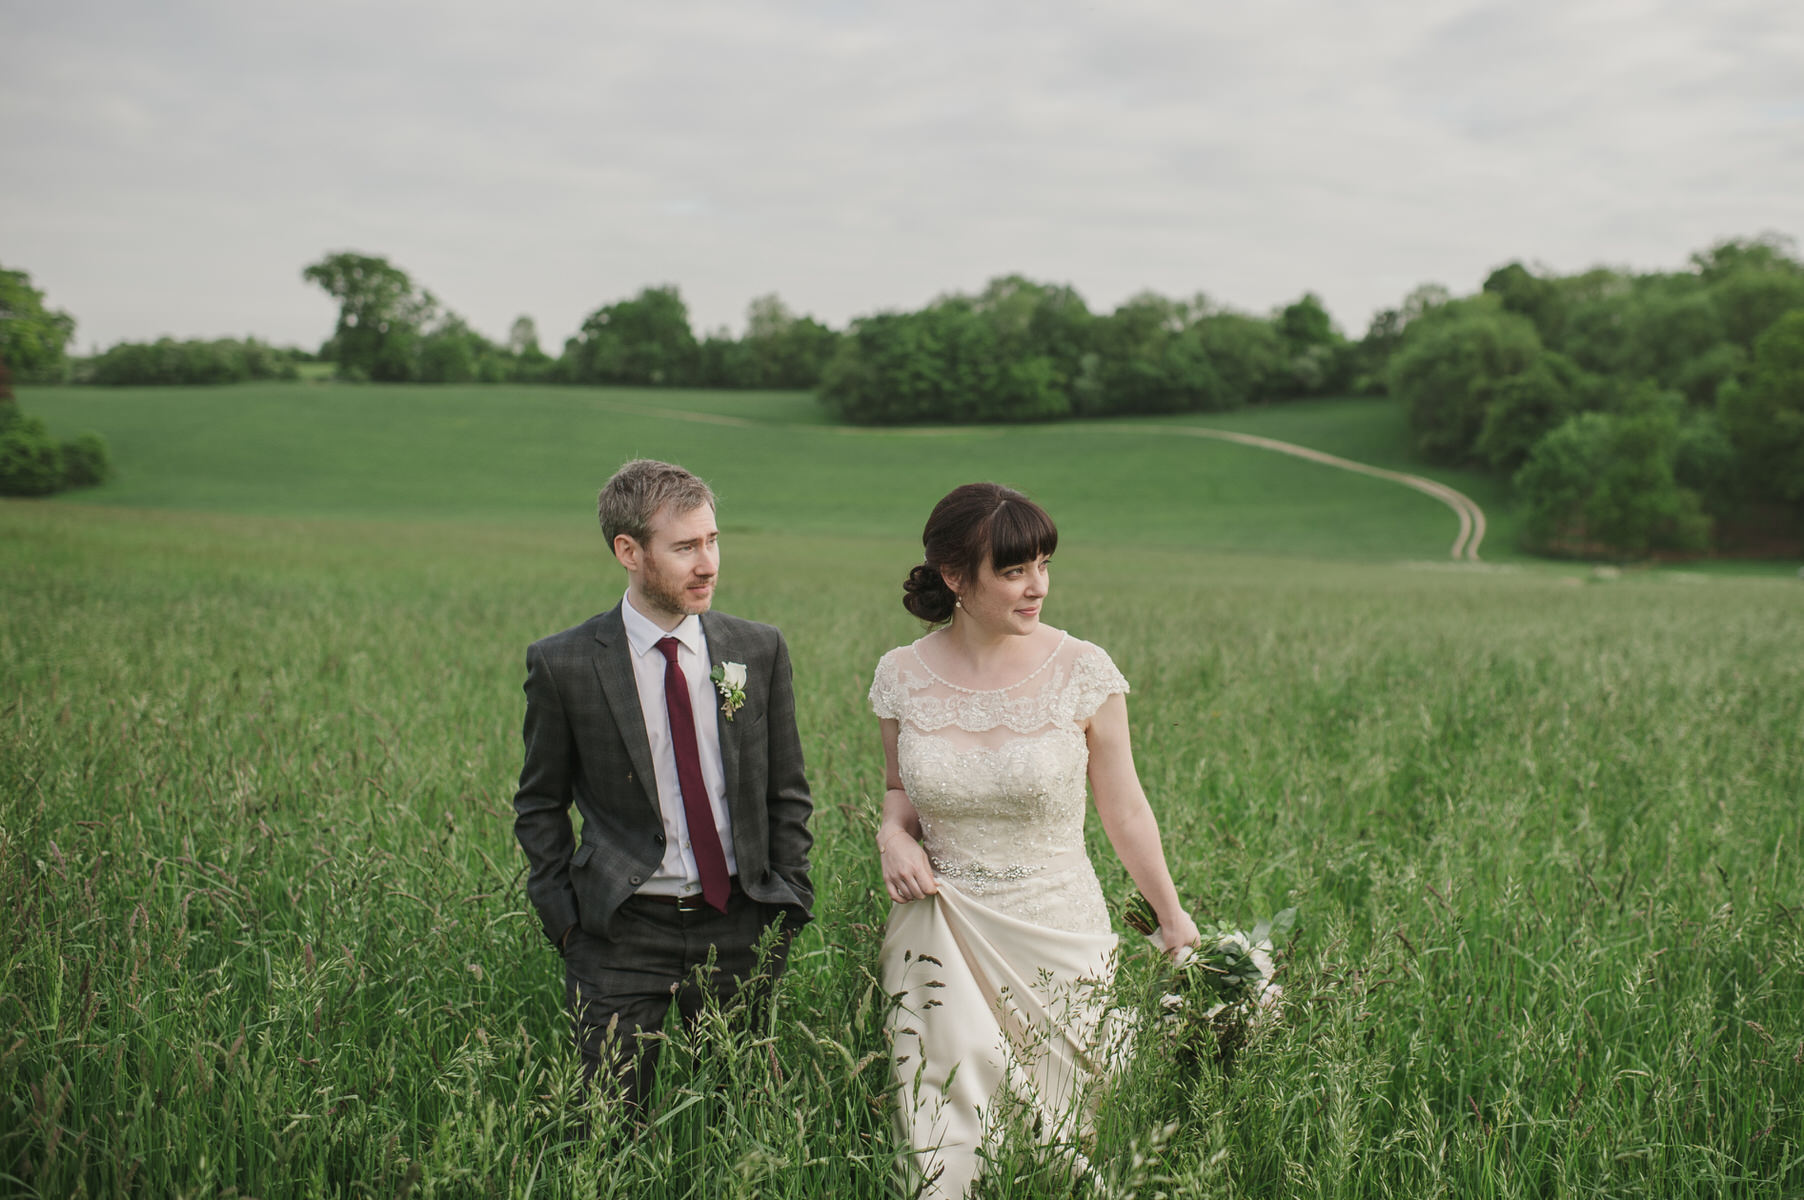 couples photos in field Herons farm wedding